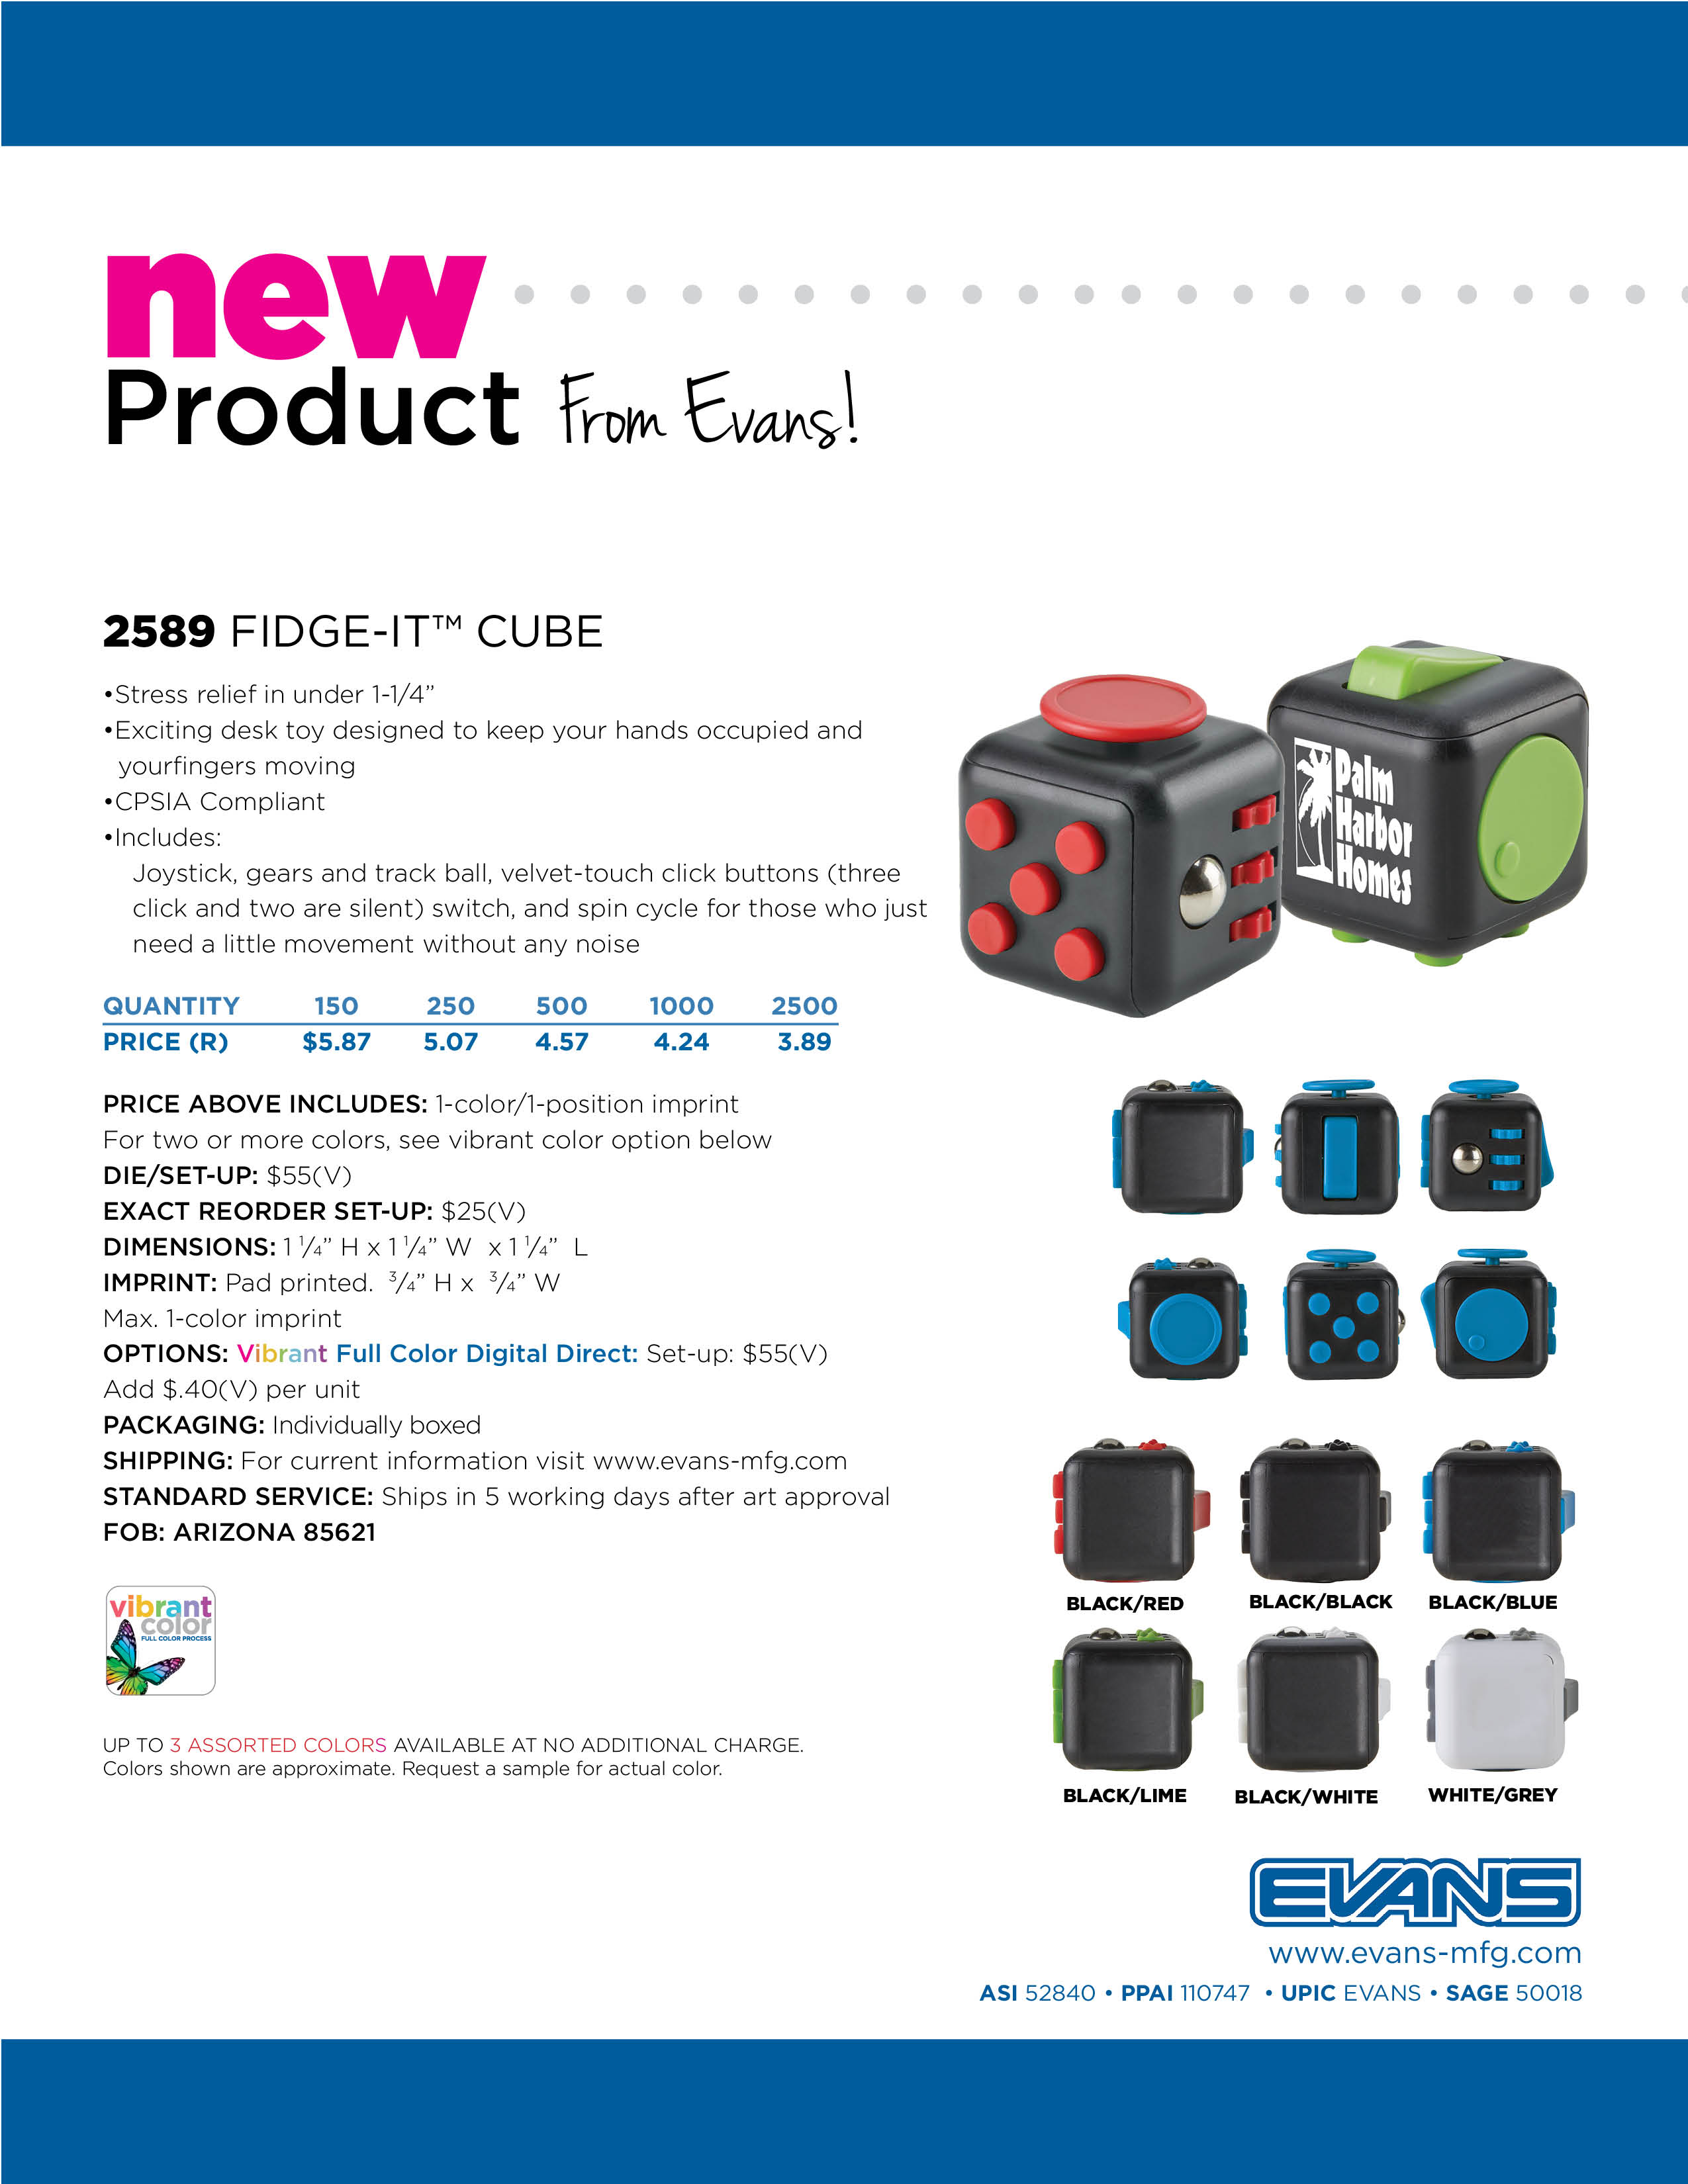 2589 Fidge-It Cube